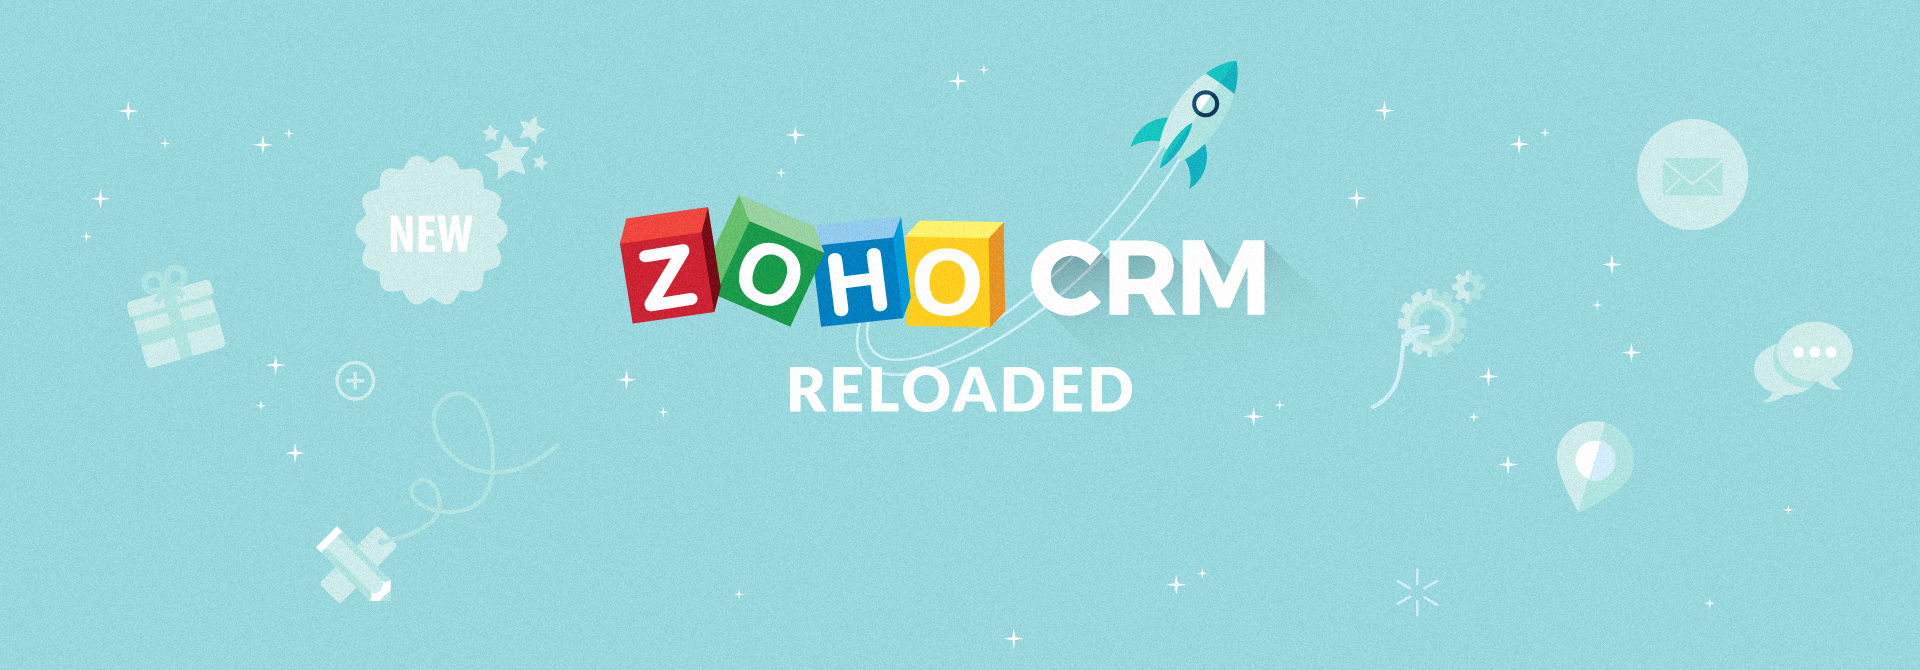 home-crm-zoho-reloaded3